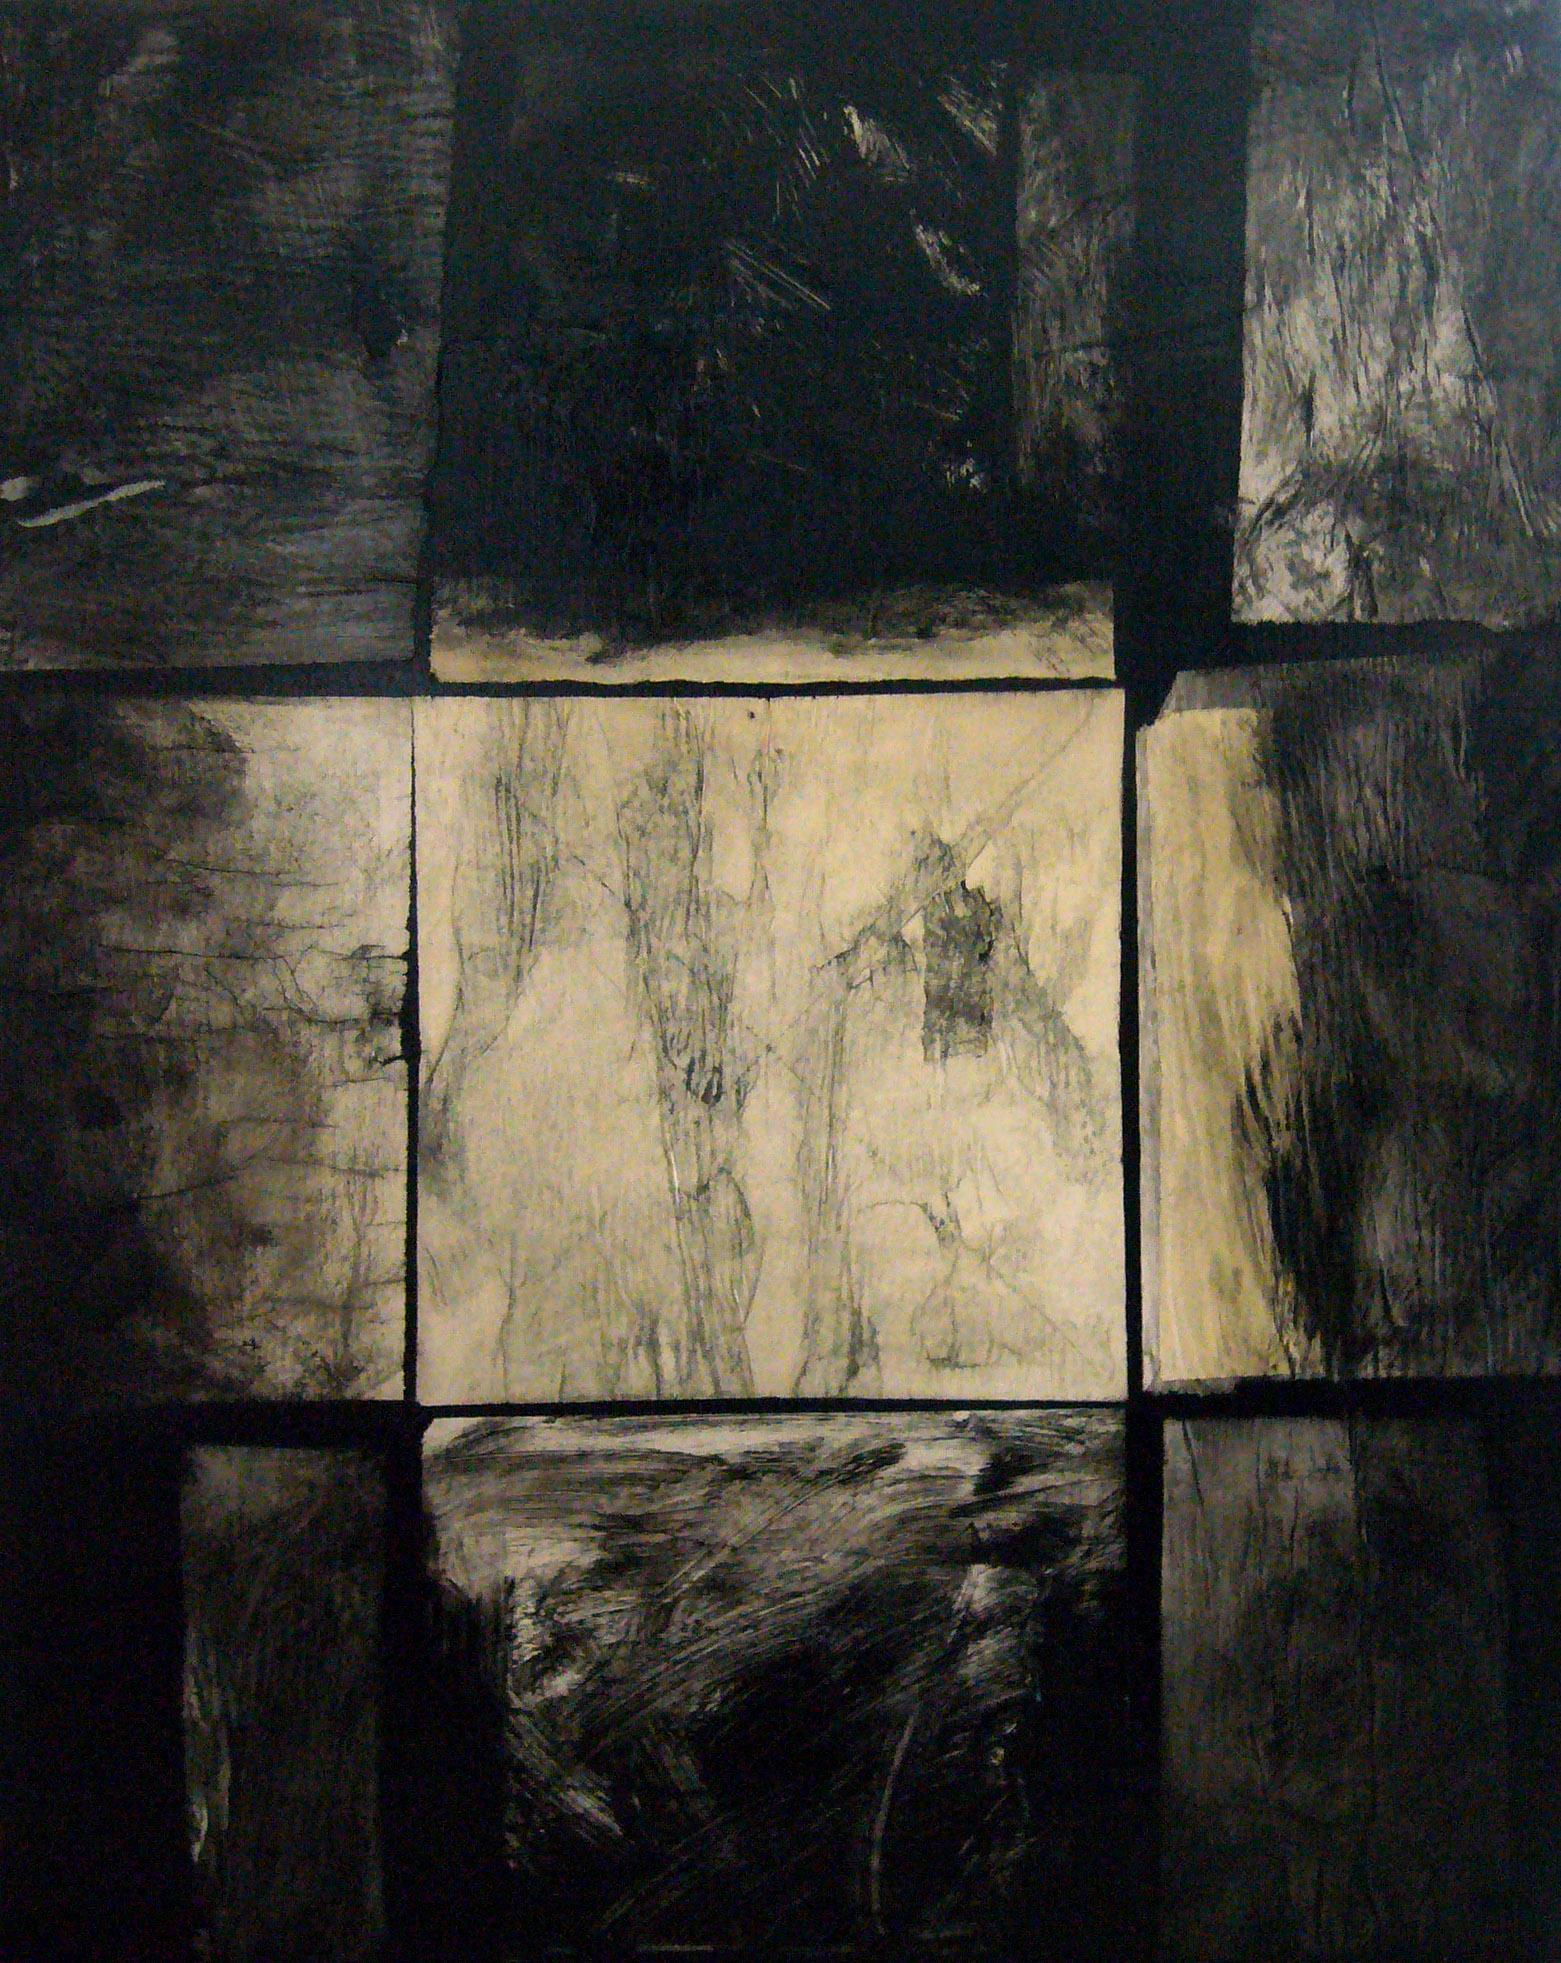 French Contemporary Abstract Art by J.-L. Veret - Hors Champs